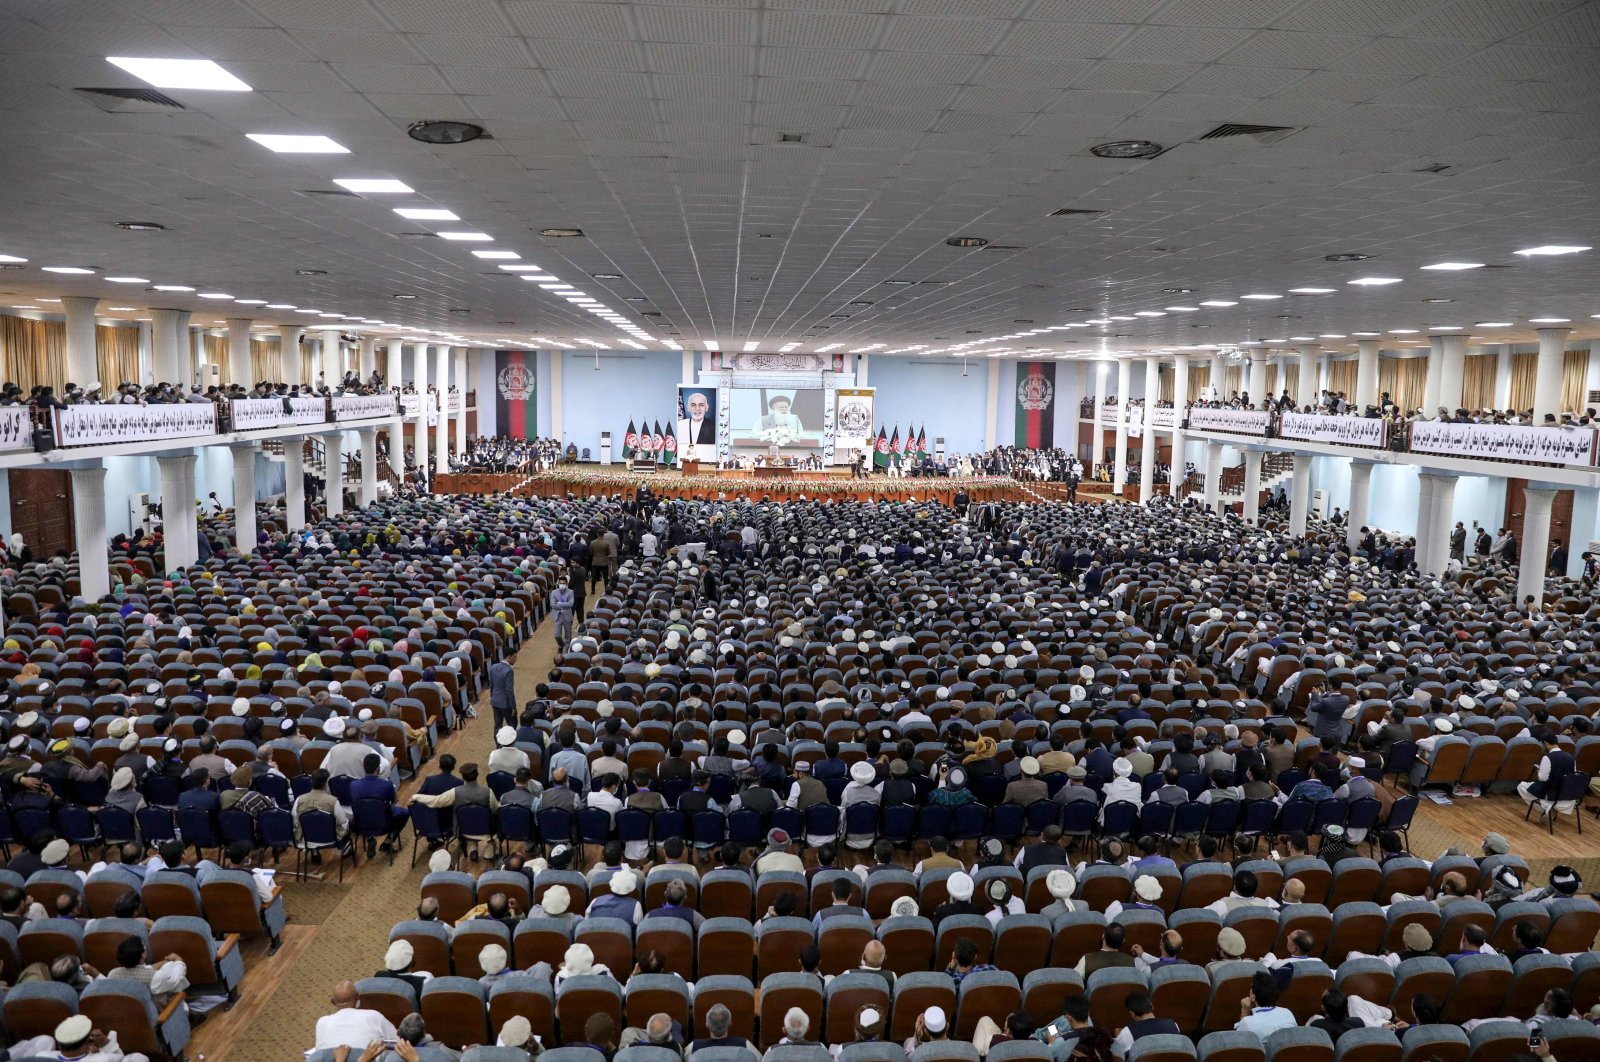 In this handout photograph taken on August 7, 2020 and released by the Press Office of President of Afghanistan, people attend the first day of the Loya Jirga, a grand assembly, at the Loya Jirga Hall in Kabul. (AFP Photo/ Press office of President of Afghanistan)